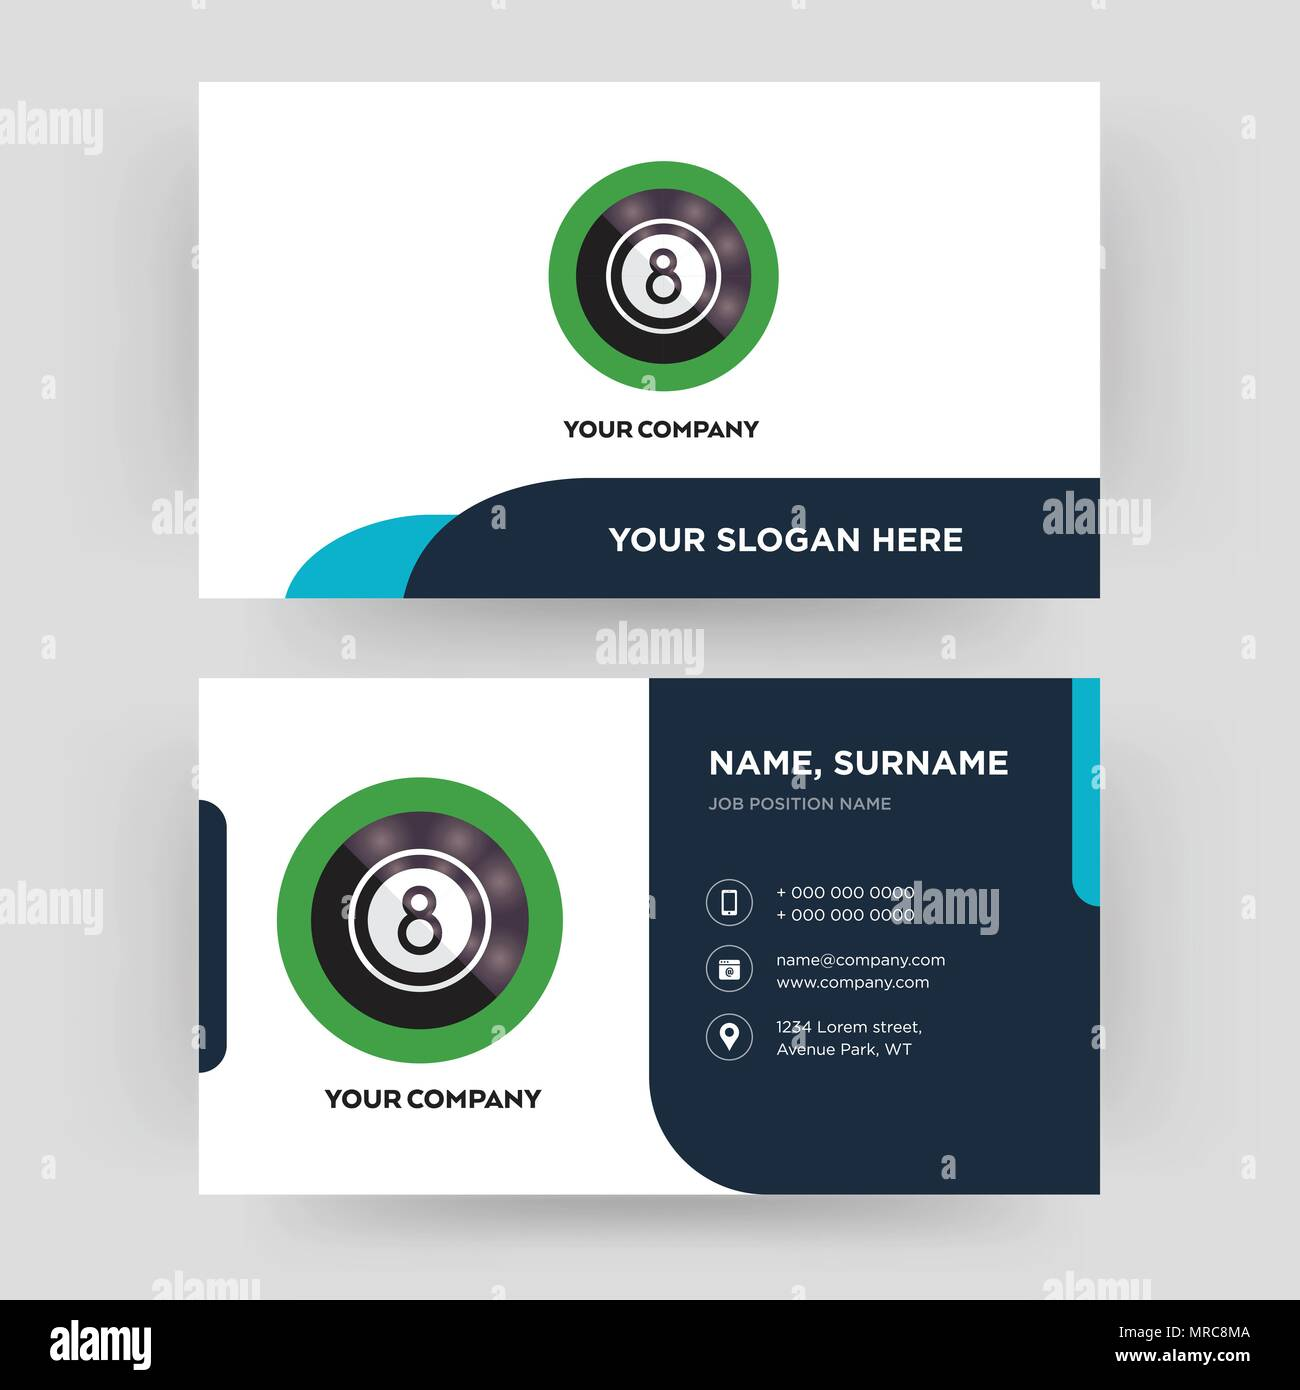 8 ball pool, business card design template, Visiting for your company, Modern Creative and Clean identity Card Vector - Stock Image